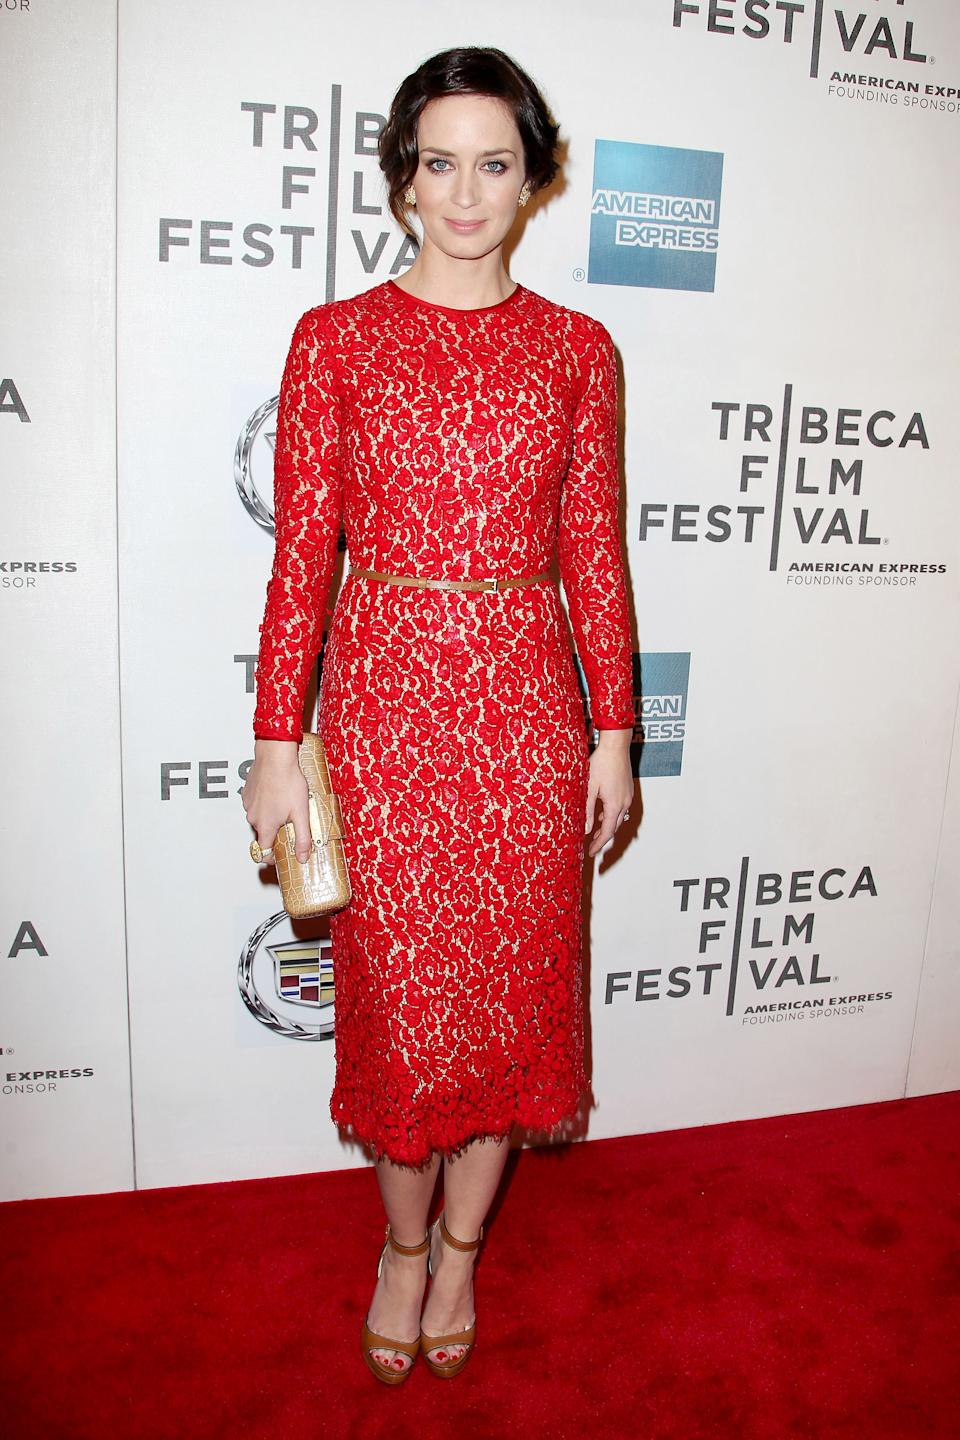 "In this photo provided by StarPix, actress Emily Blunt arrives for the Tribeca Film Festival premiere of  ""Your Sister`s Sister,"" Thursday, April 19, 2012 in New York. Blunt stars in the film. (AP Photo/StarPix, Amanda Schawb)"